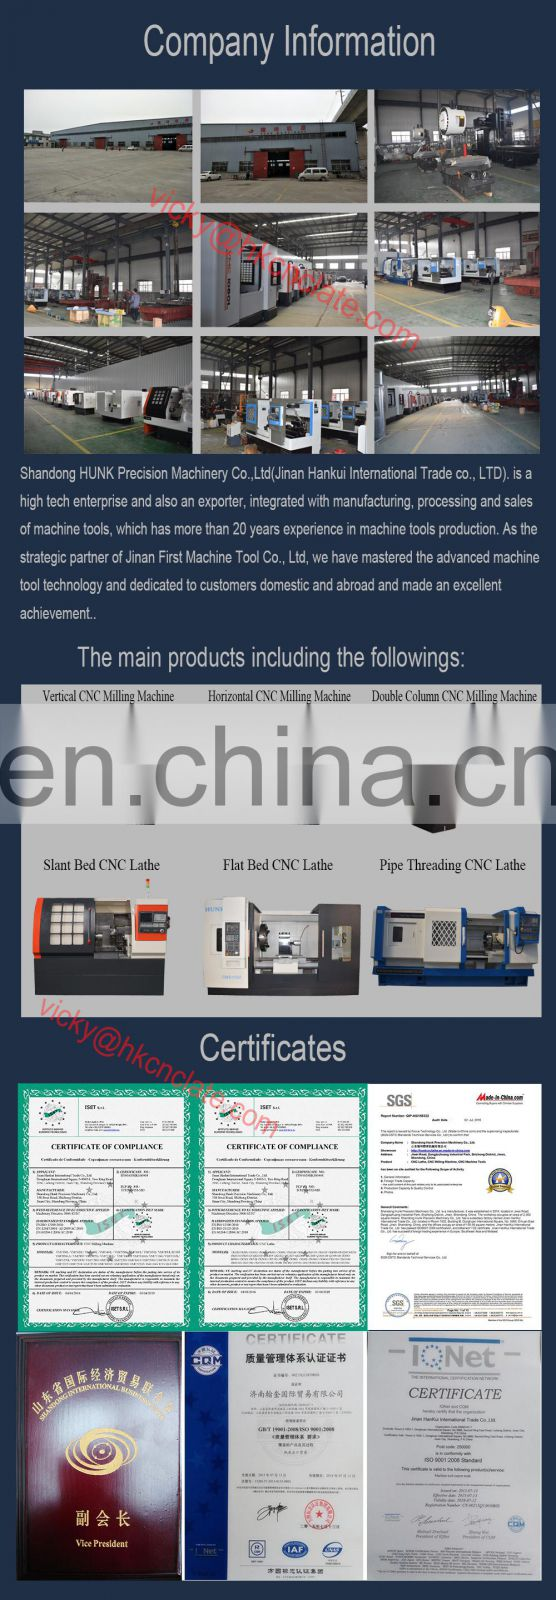 Taiwan Spindle ATC And CTS System Vertical CNC Milling Machine For Metal/Alloy/Steel Parts Machining